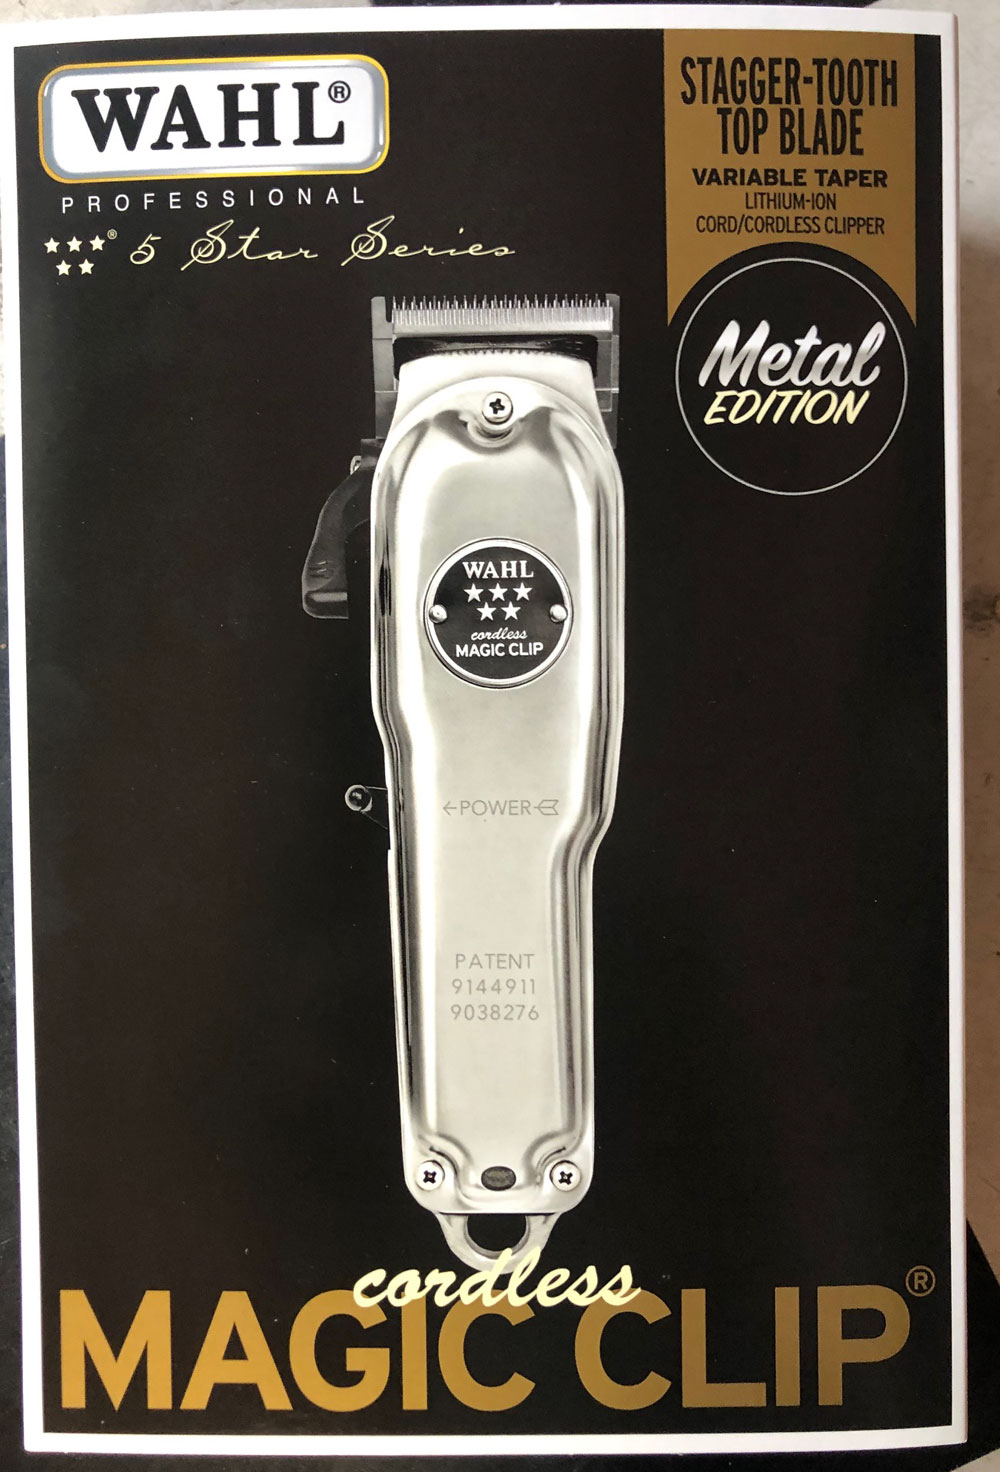 Wahl Cordless Magic Clip Limited Metal Edition